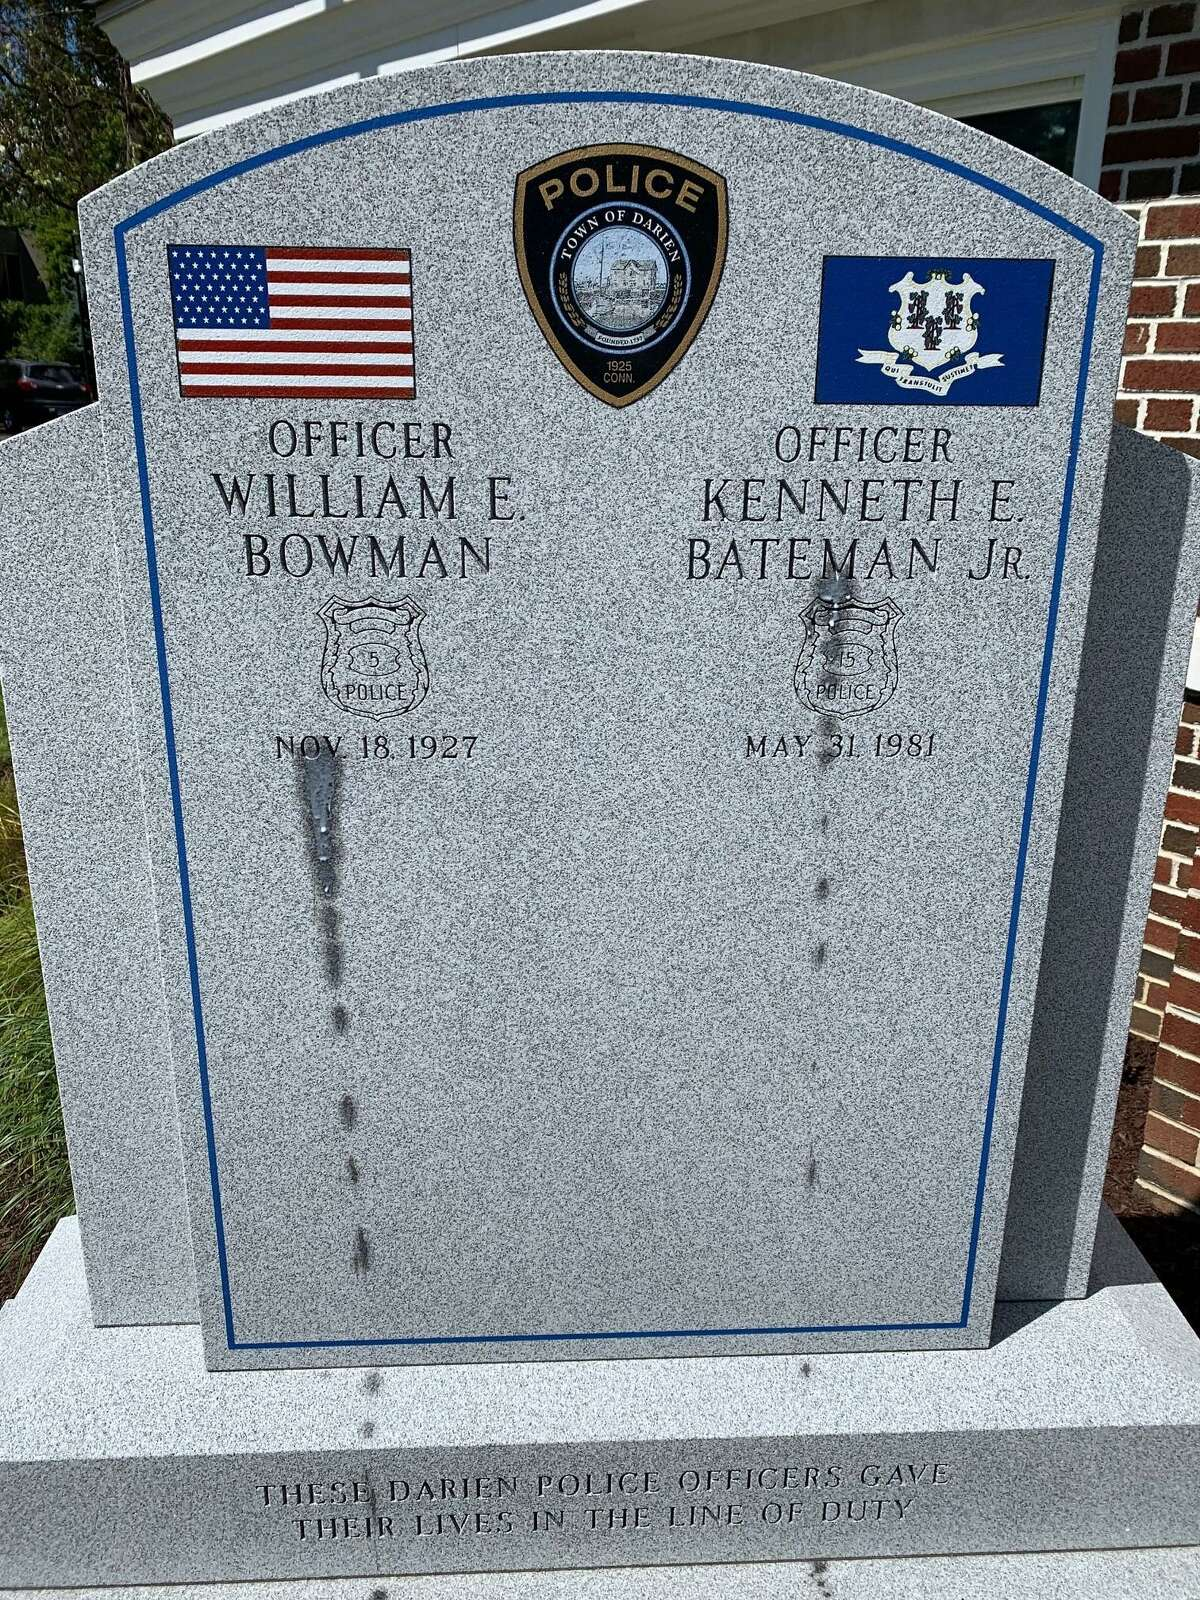 A monument dedicated to the memory of two fallen Darien police officers was defaced using what police believe to be a wax paintball gun.